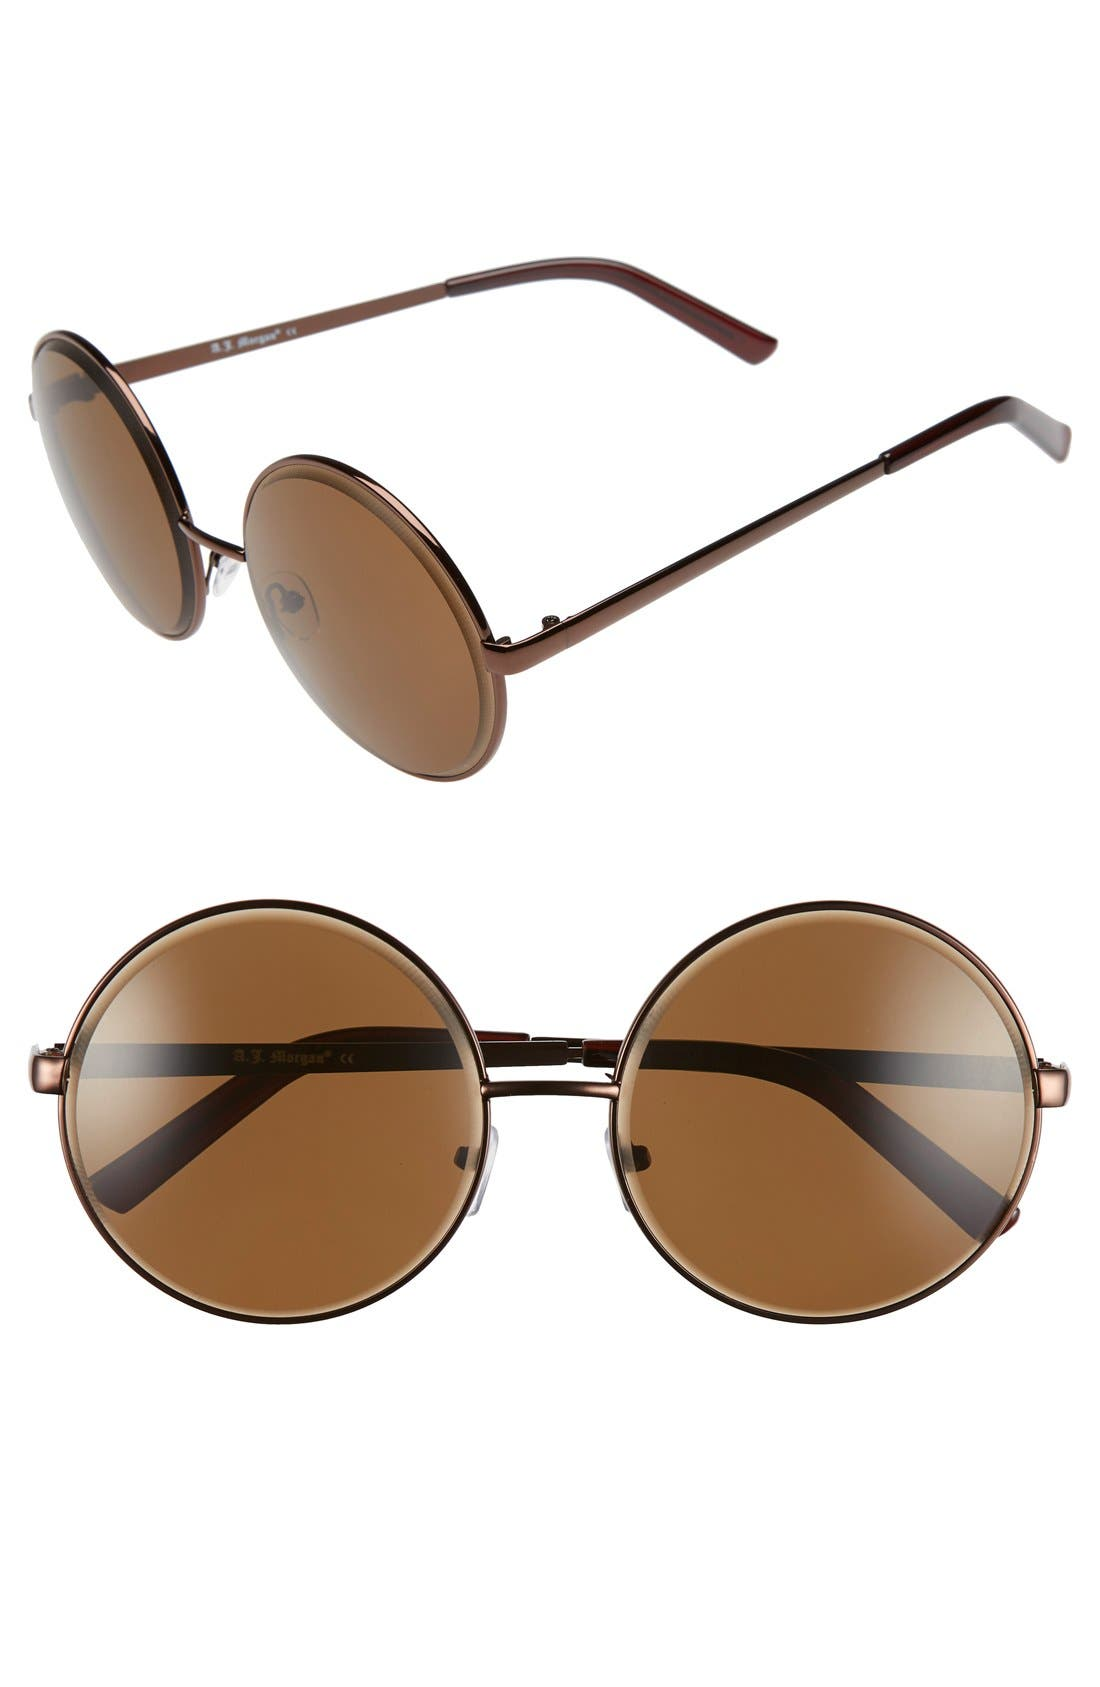 Main Image - A.J. Morgan 'Global' 60mm Oversize Round Sunglasses